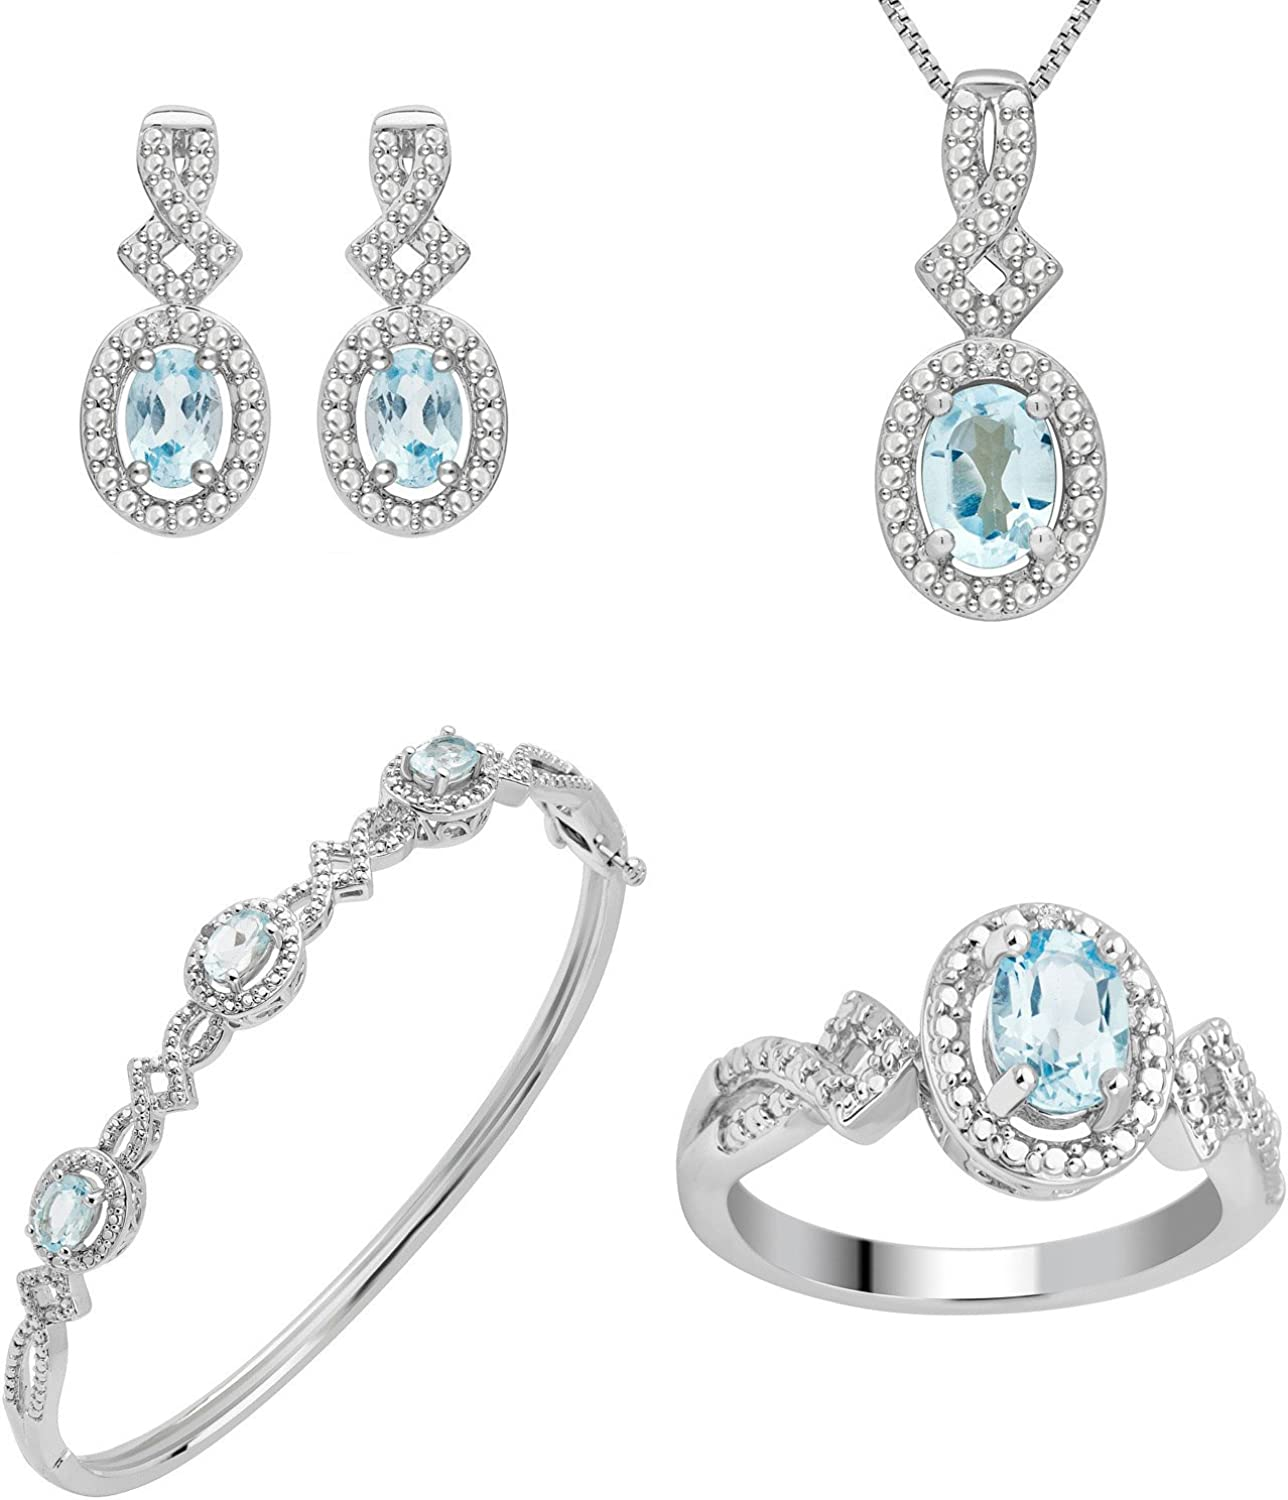 Blue Topaz and Diamond Accent Ring, Earring, Pendant and Bangle 4 Piece Jewelry Set